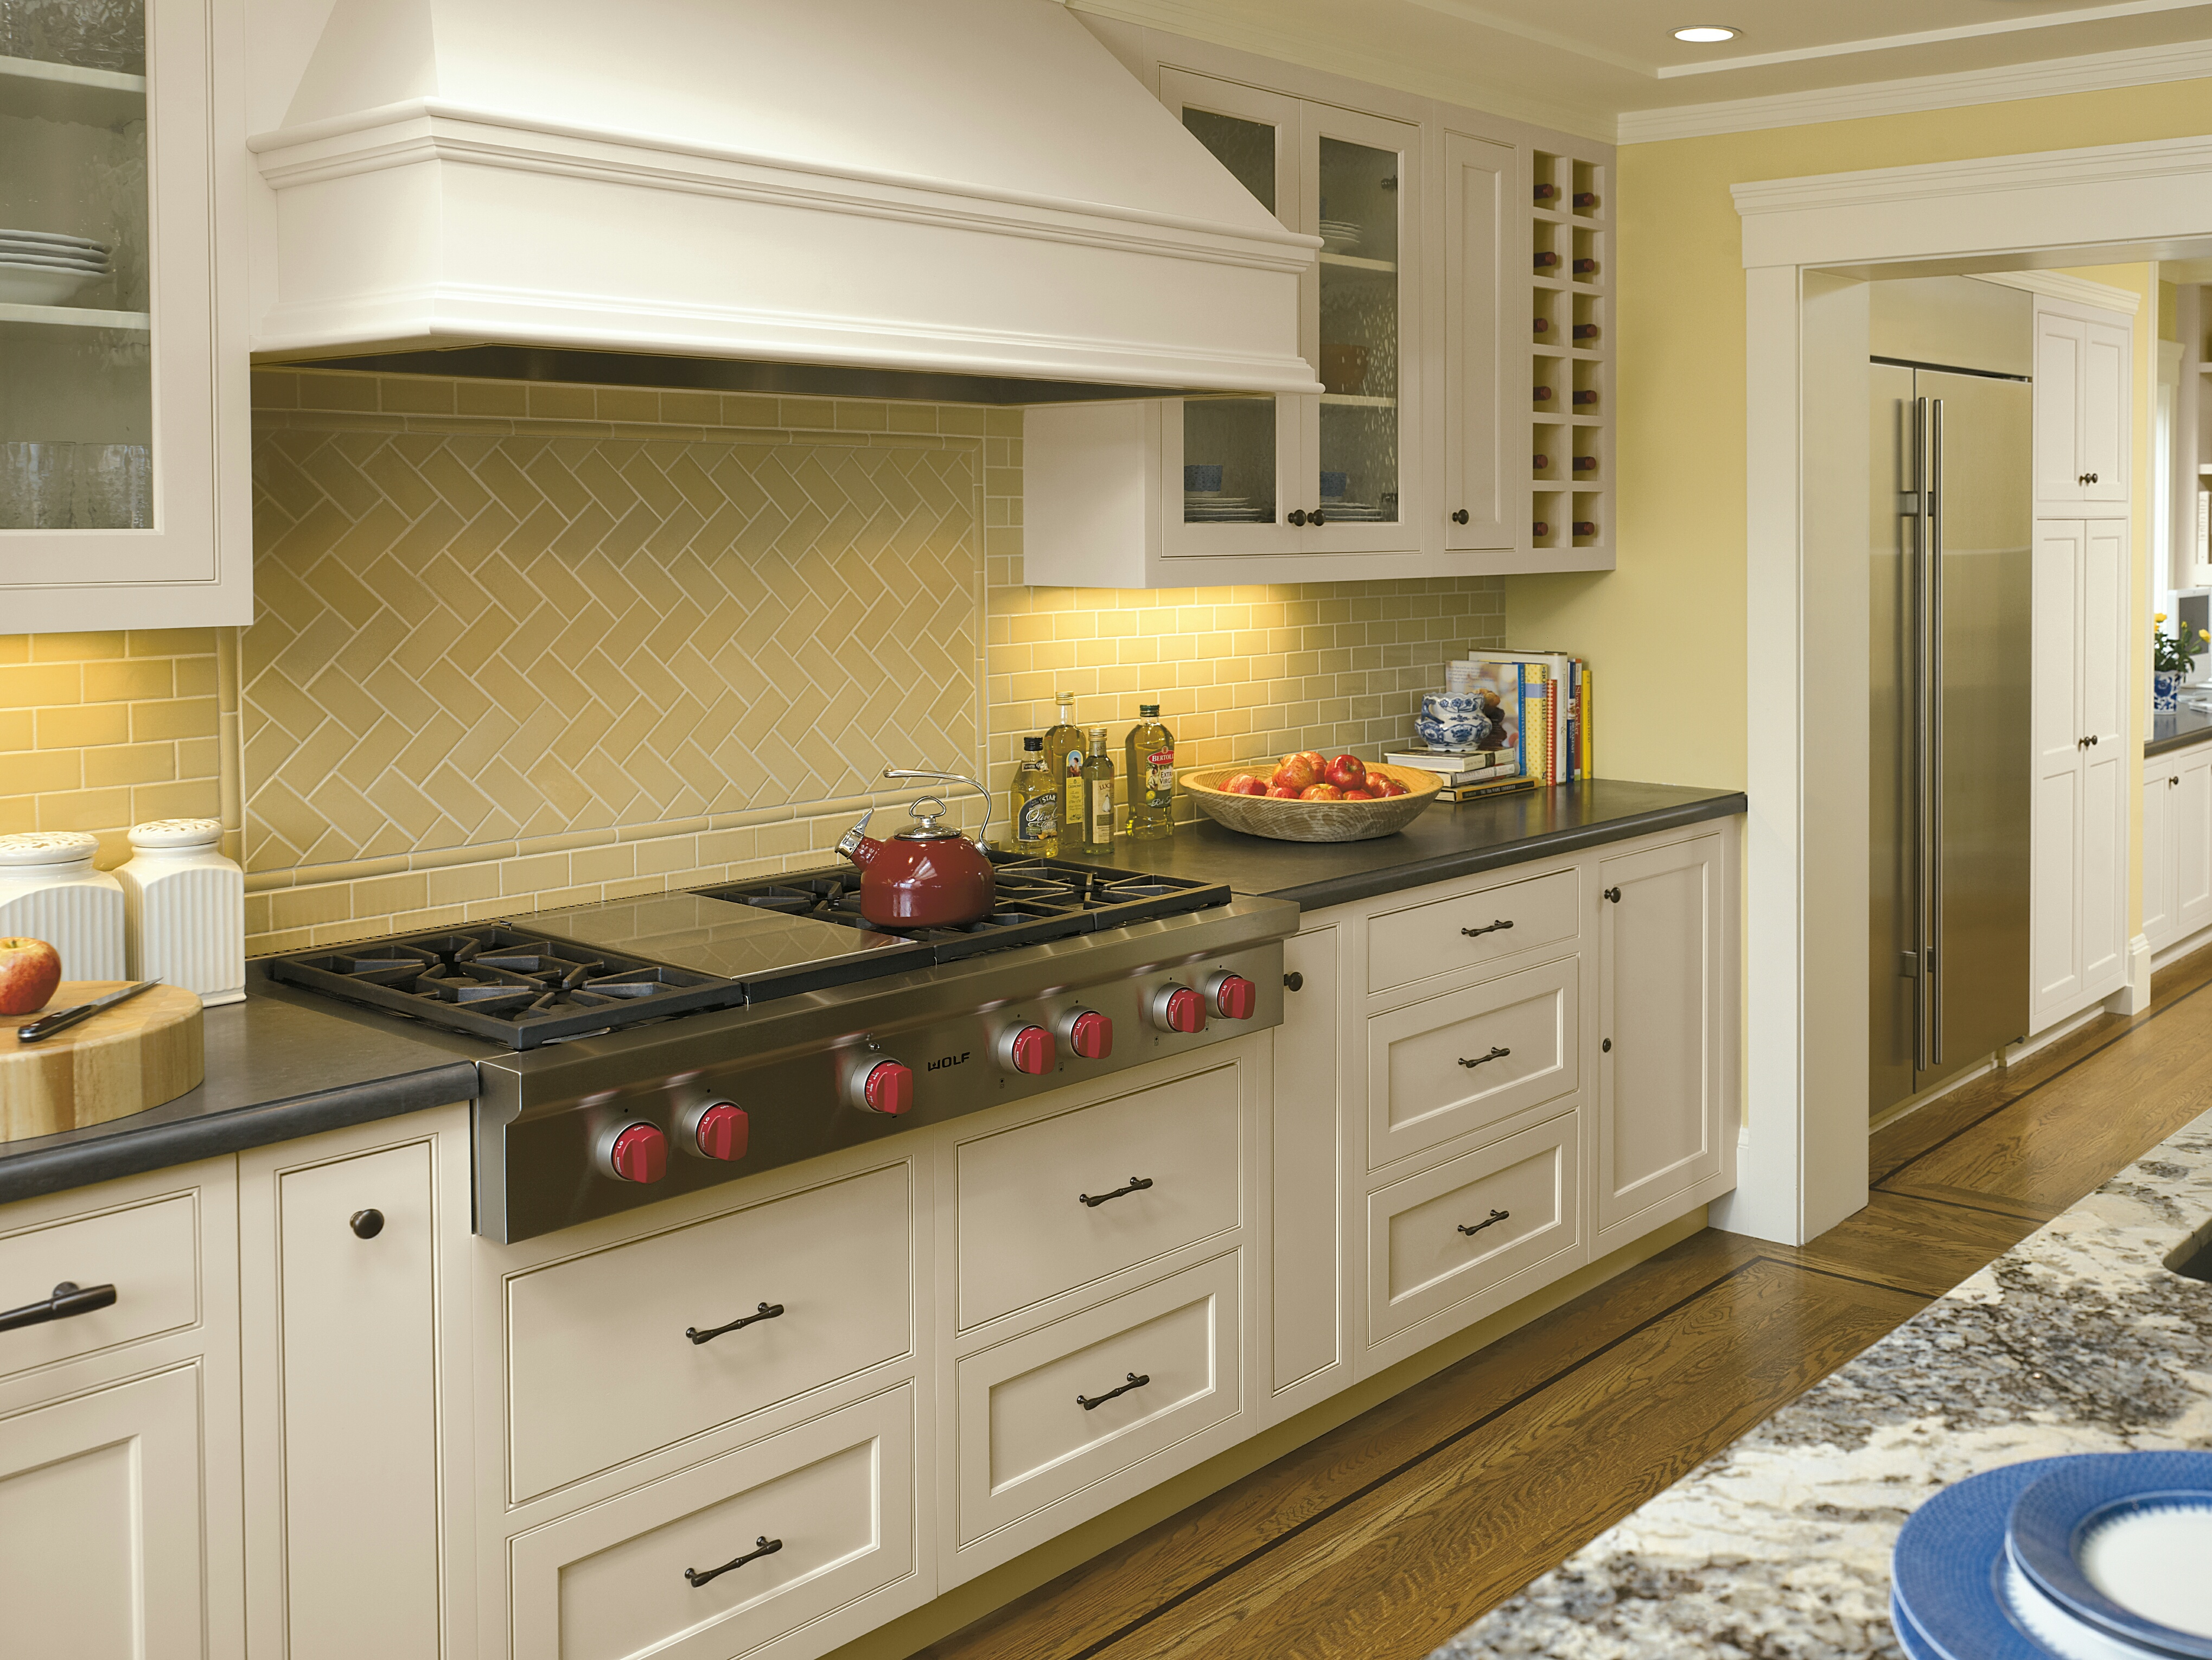 transitional kitchen renovation designs transitional